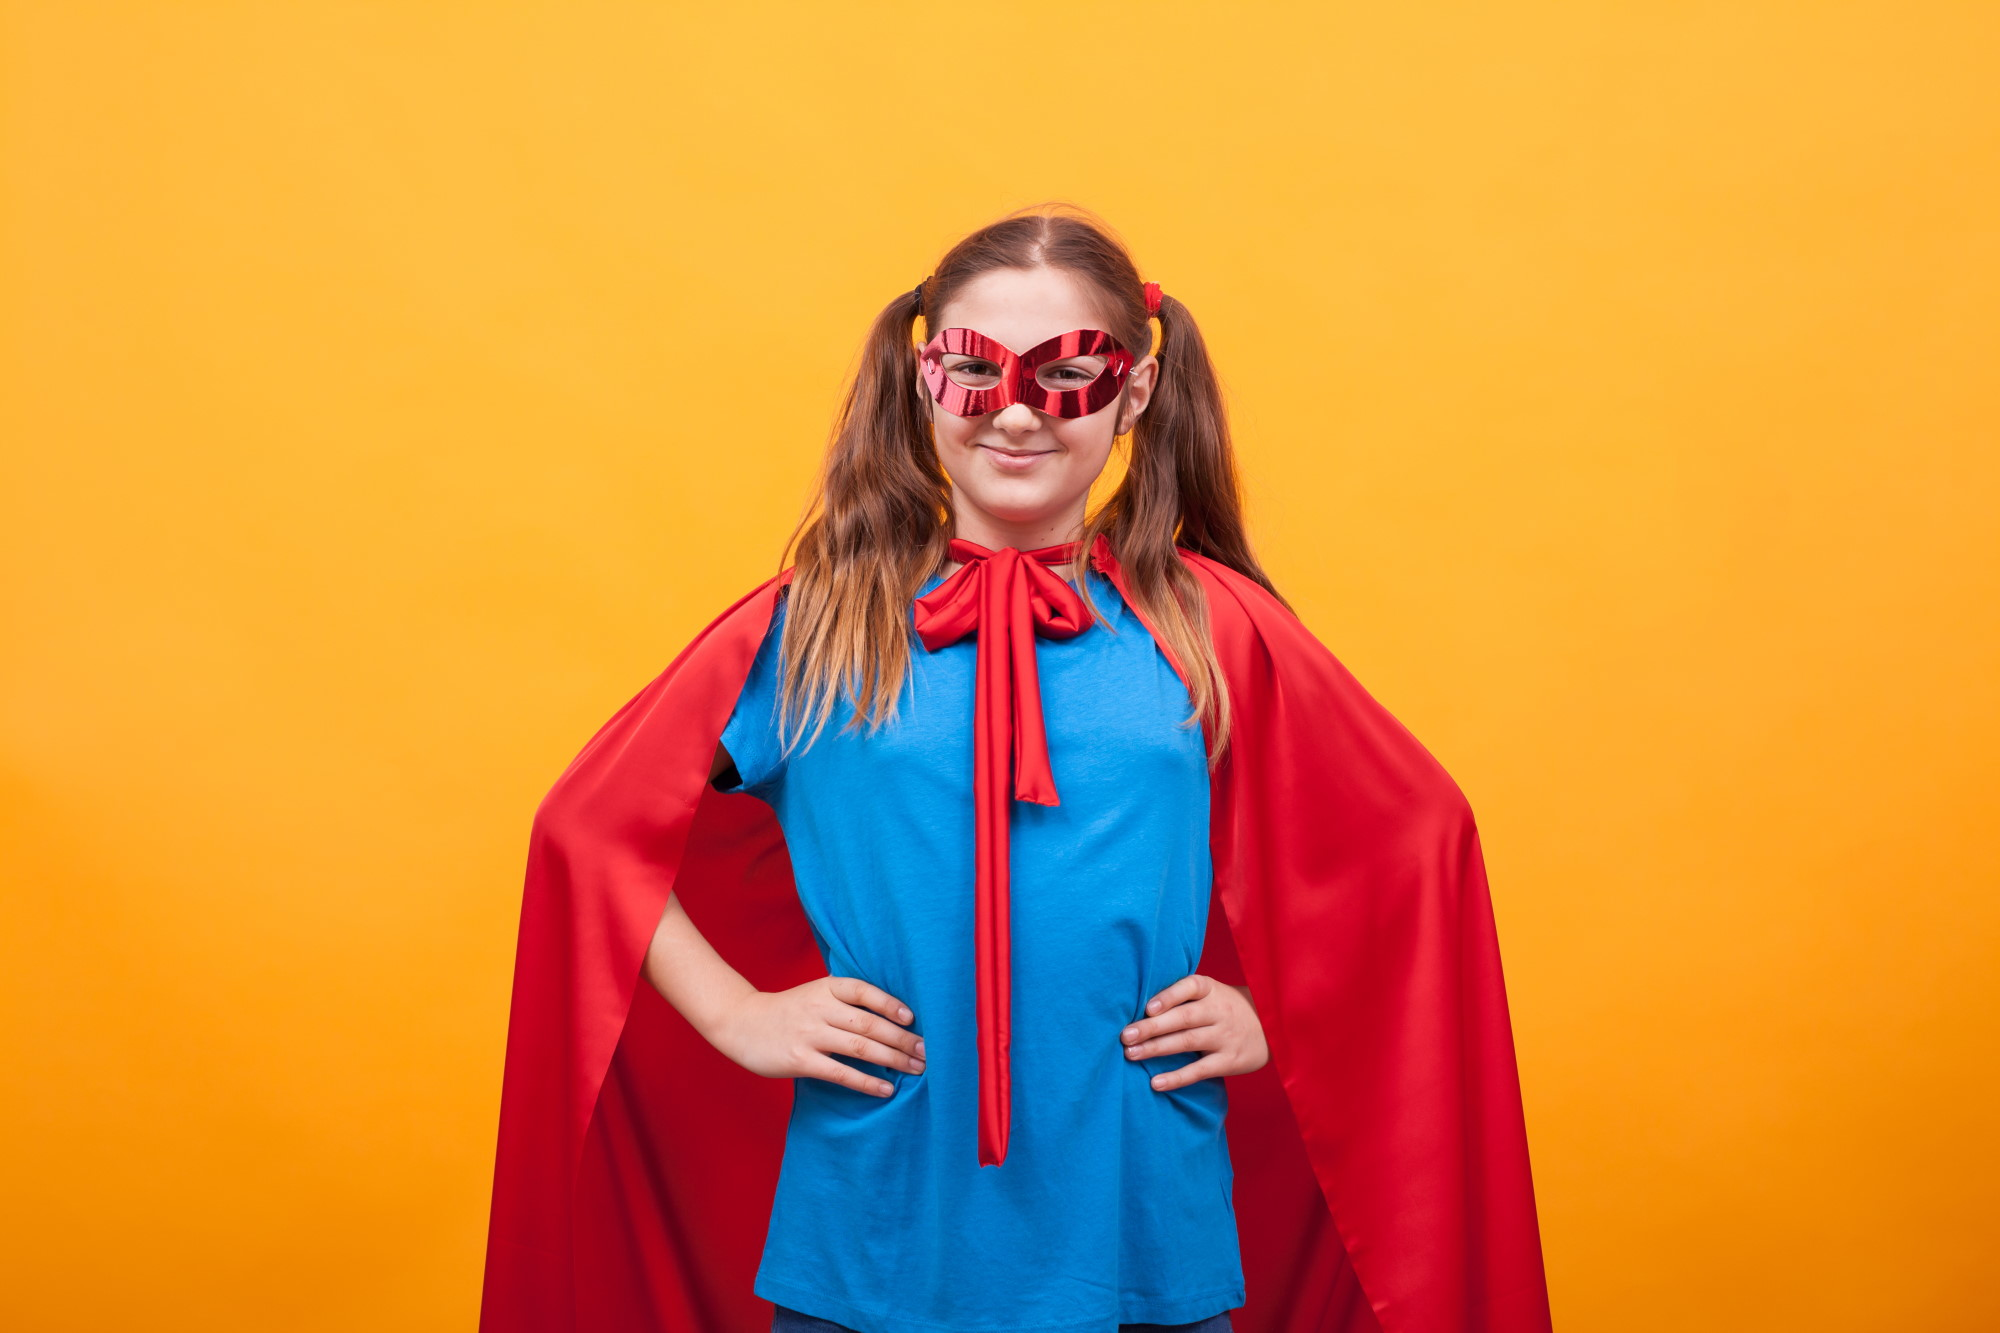 little girl in super hero costume ready to save the world from bad guys over yellow background